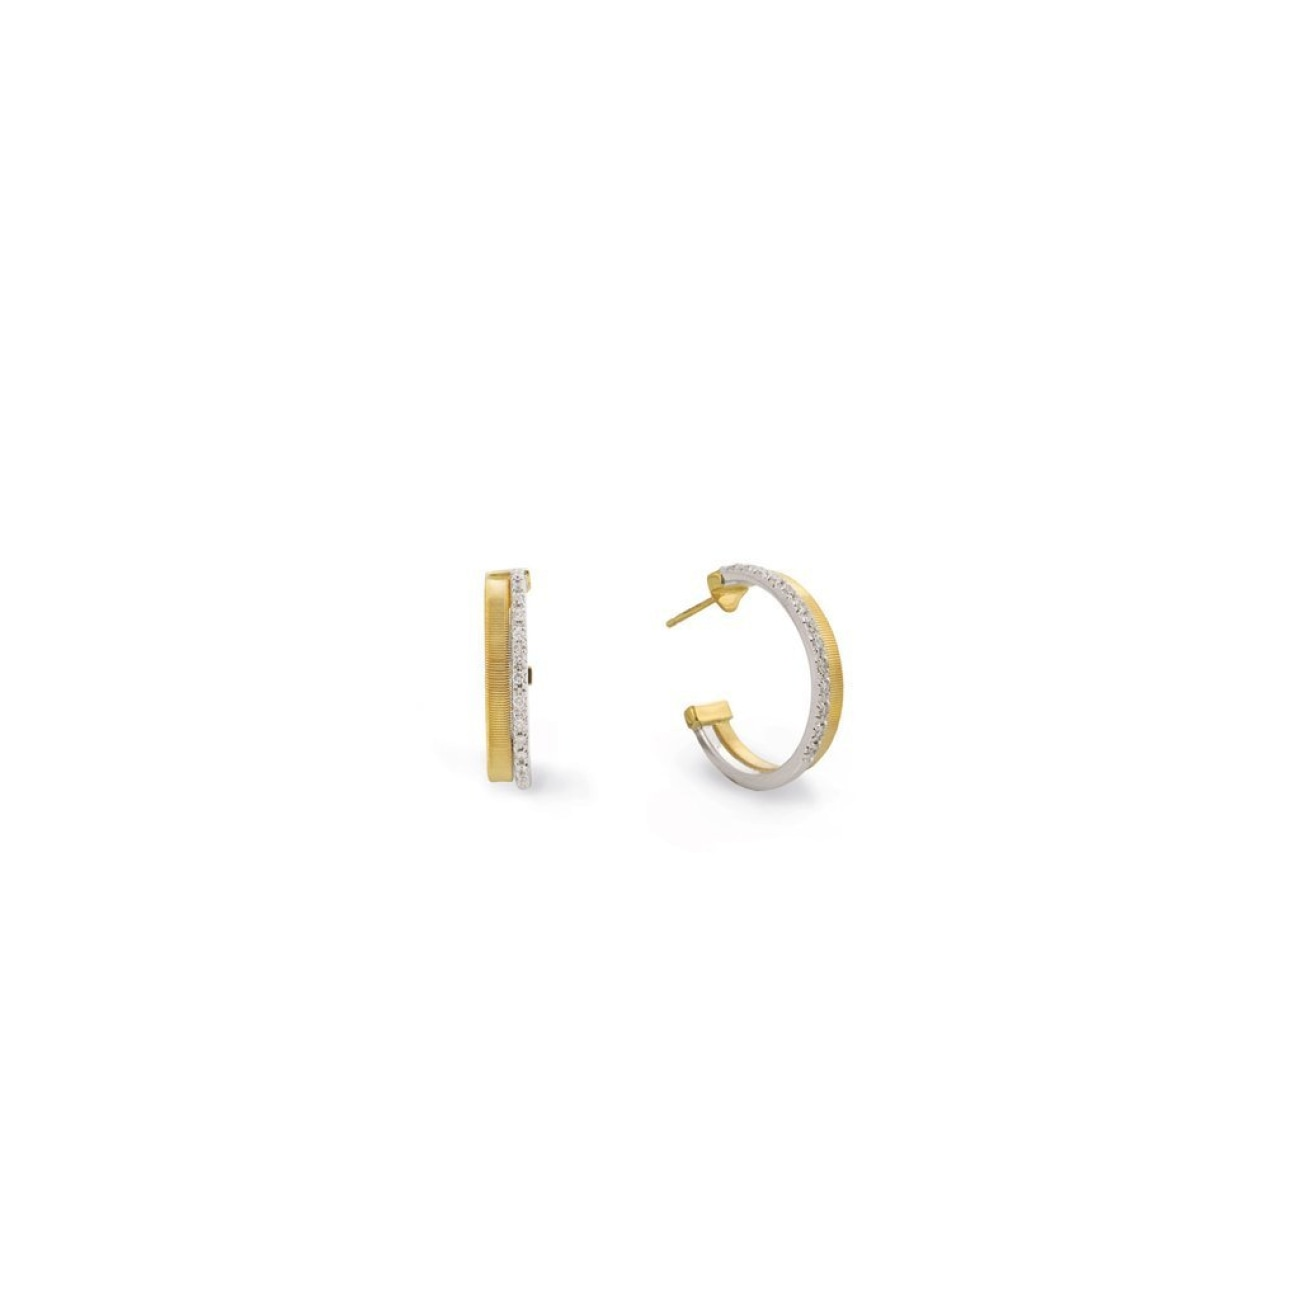 Marco Bicego Jewelry - 18K Yellow Gold Two Row Pave Diamond Hoop Earrings | Manfredi Jewels